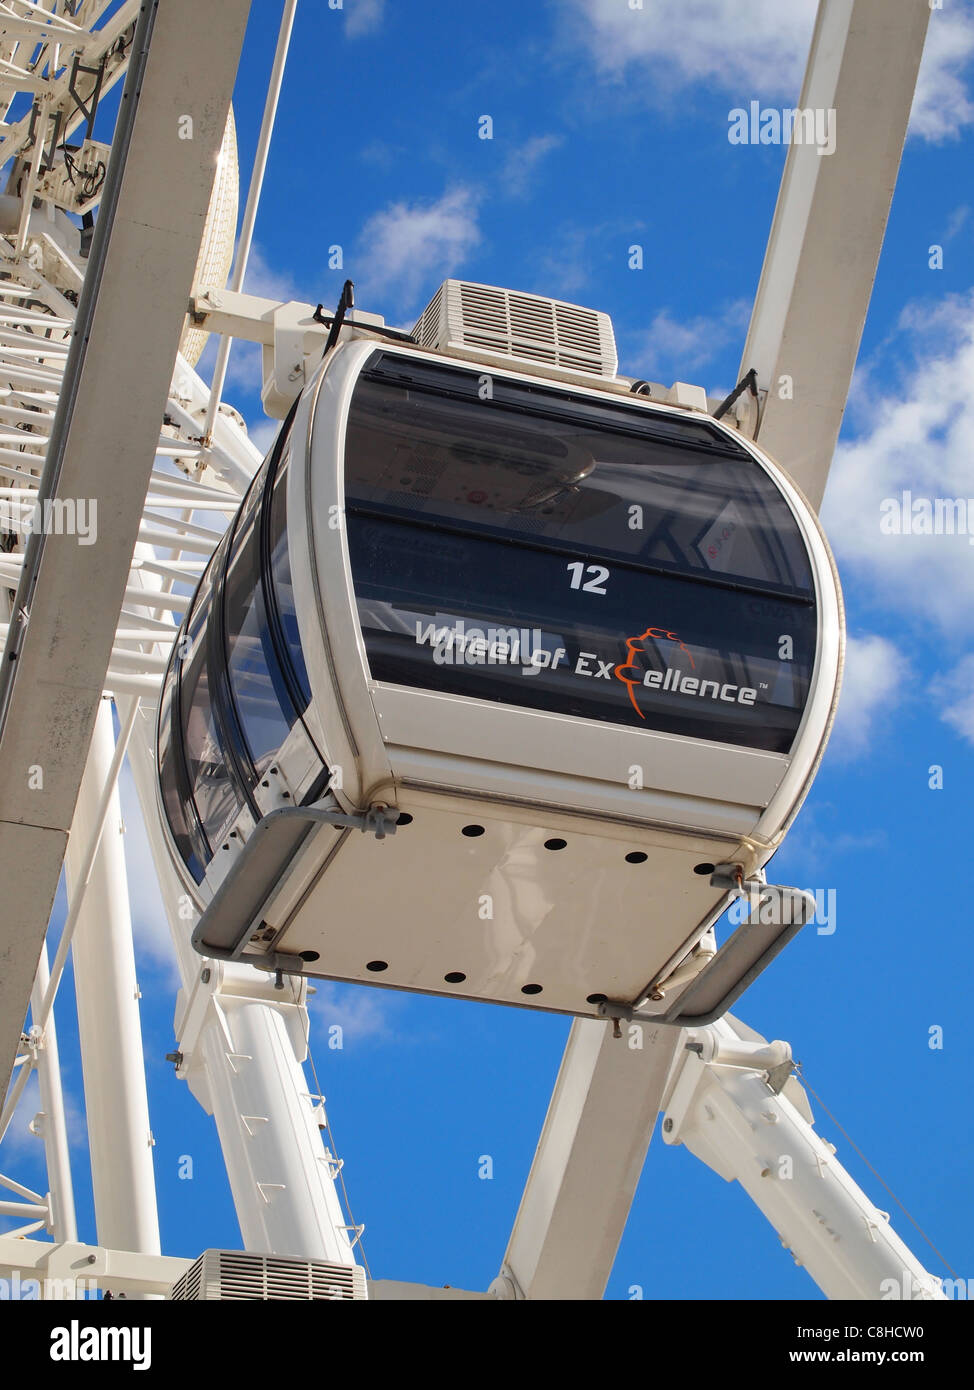 Gondola on The Brighton Wheel - also known as 'The Wheel of Excellence' - a new attraction on Brighton's - Stock Image